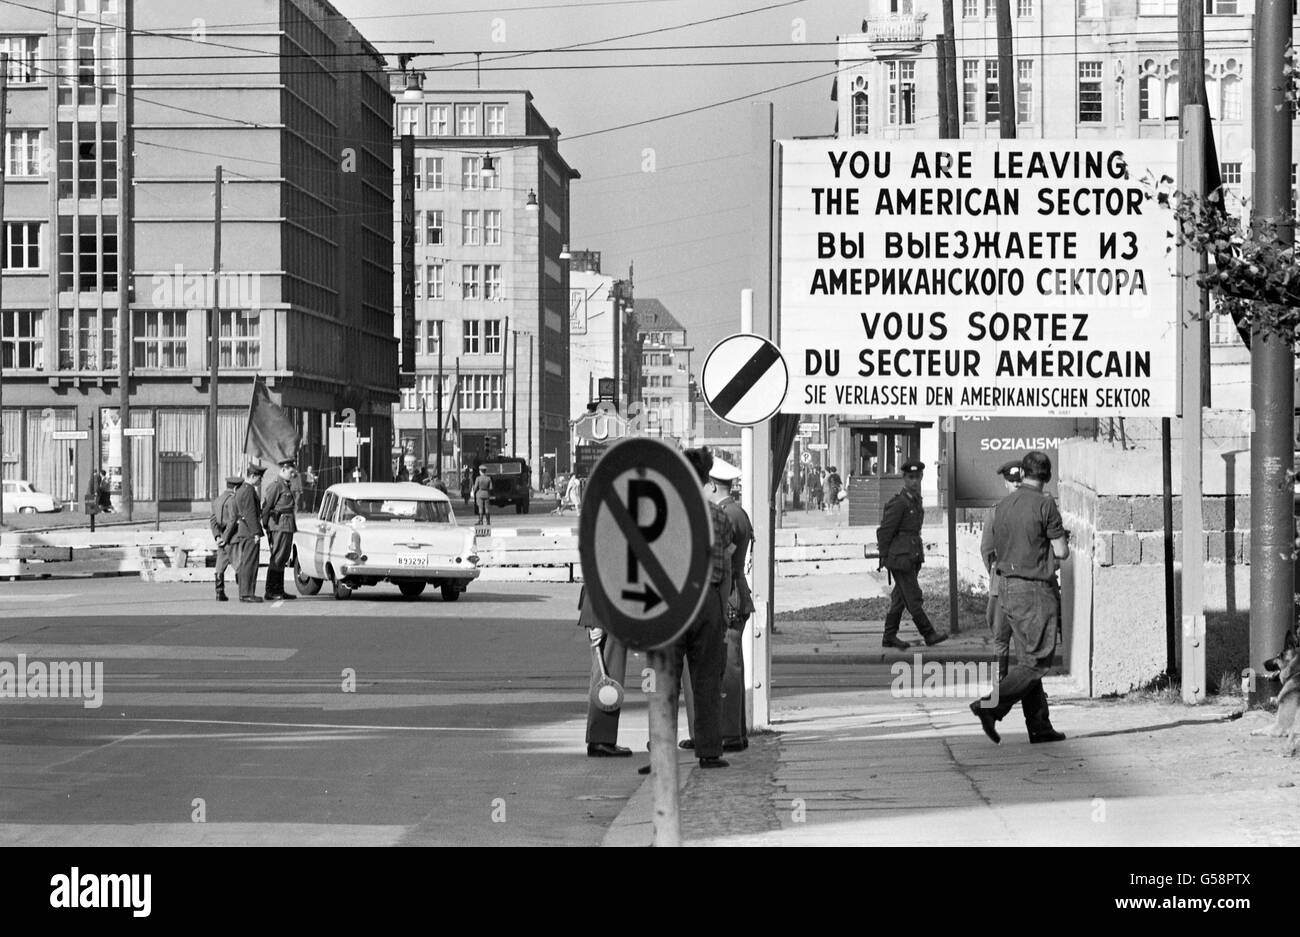 Berlin. Checkpoint in West Berlin between the American and Soviet sectors, October 1961. - Stock Image